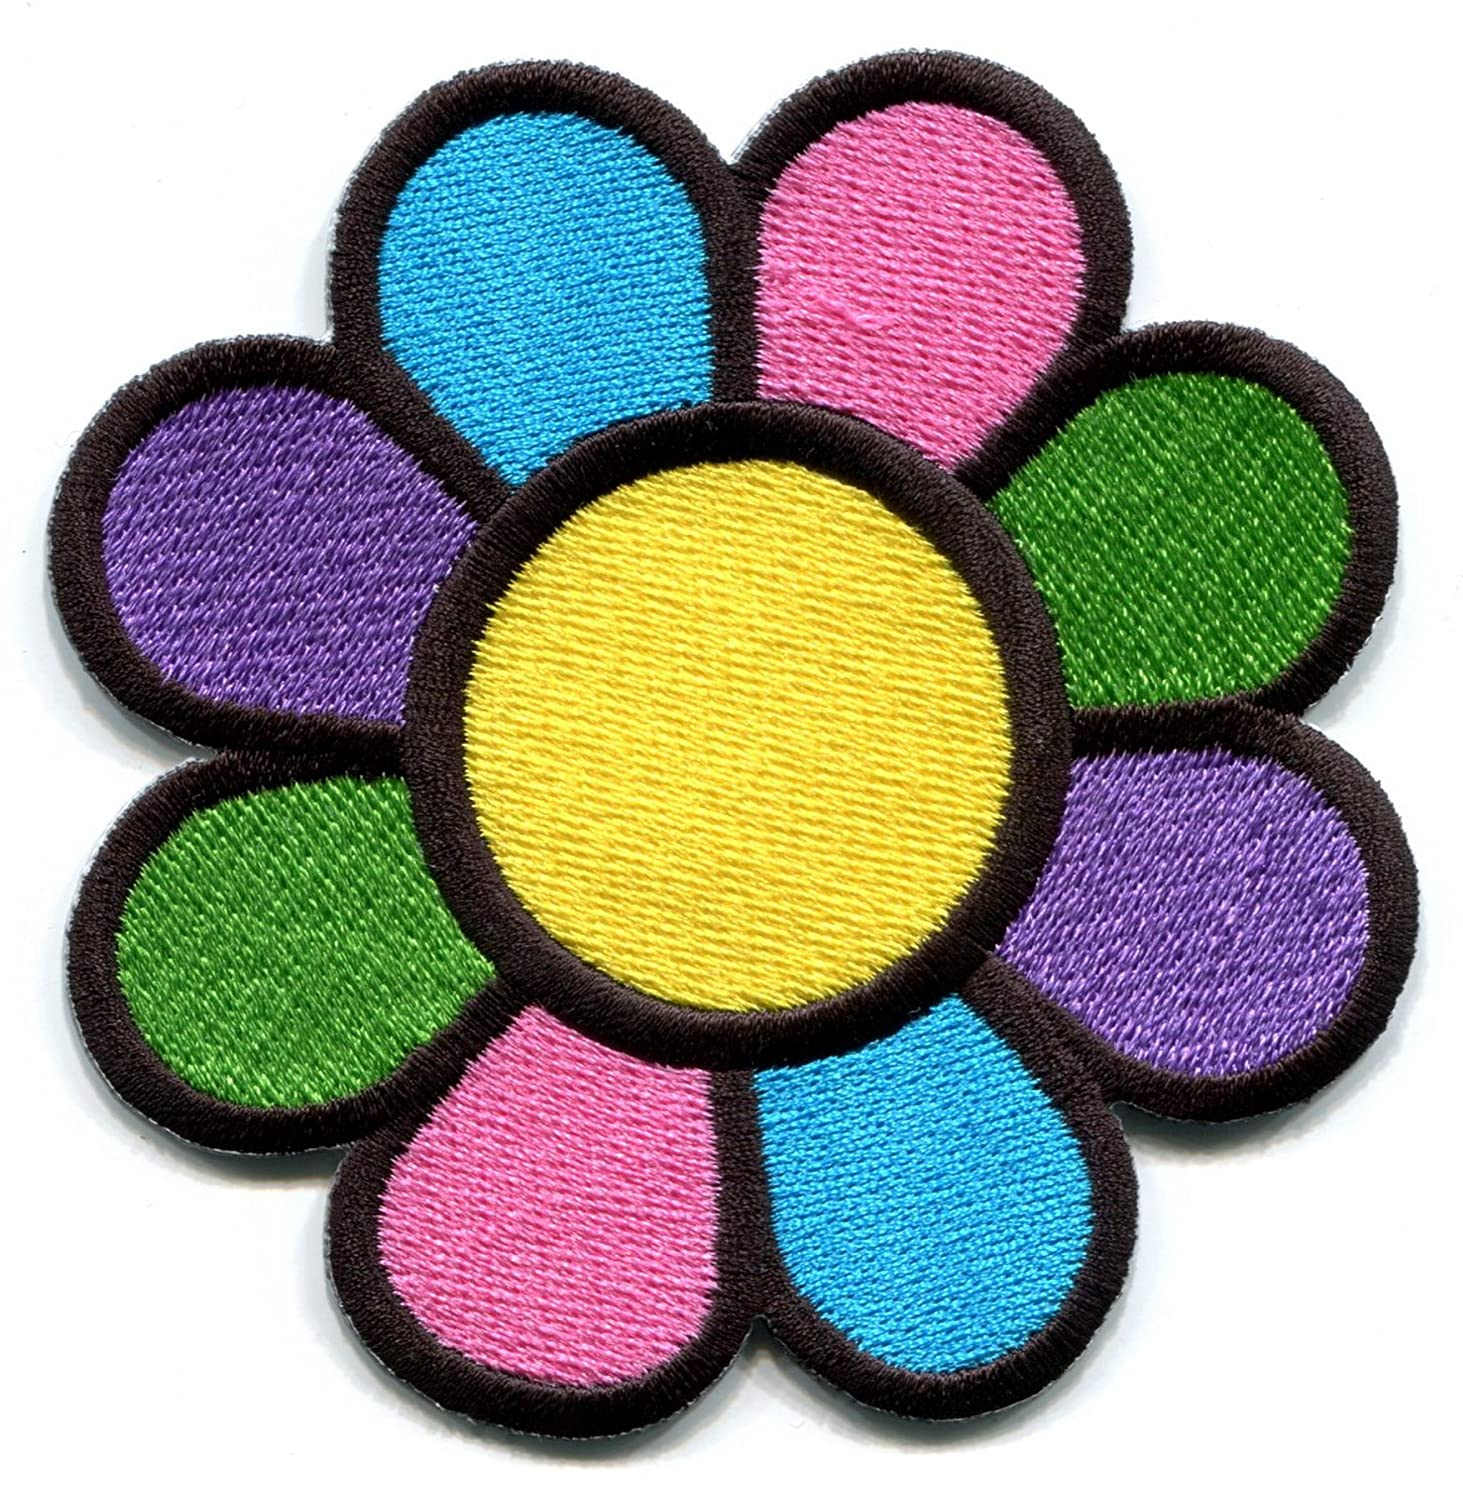 Flower power Summer of Love boho hippie retro peace weed embroidered applique iron-on patch new size Medium